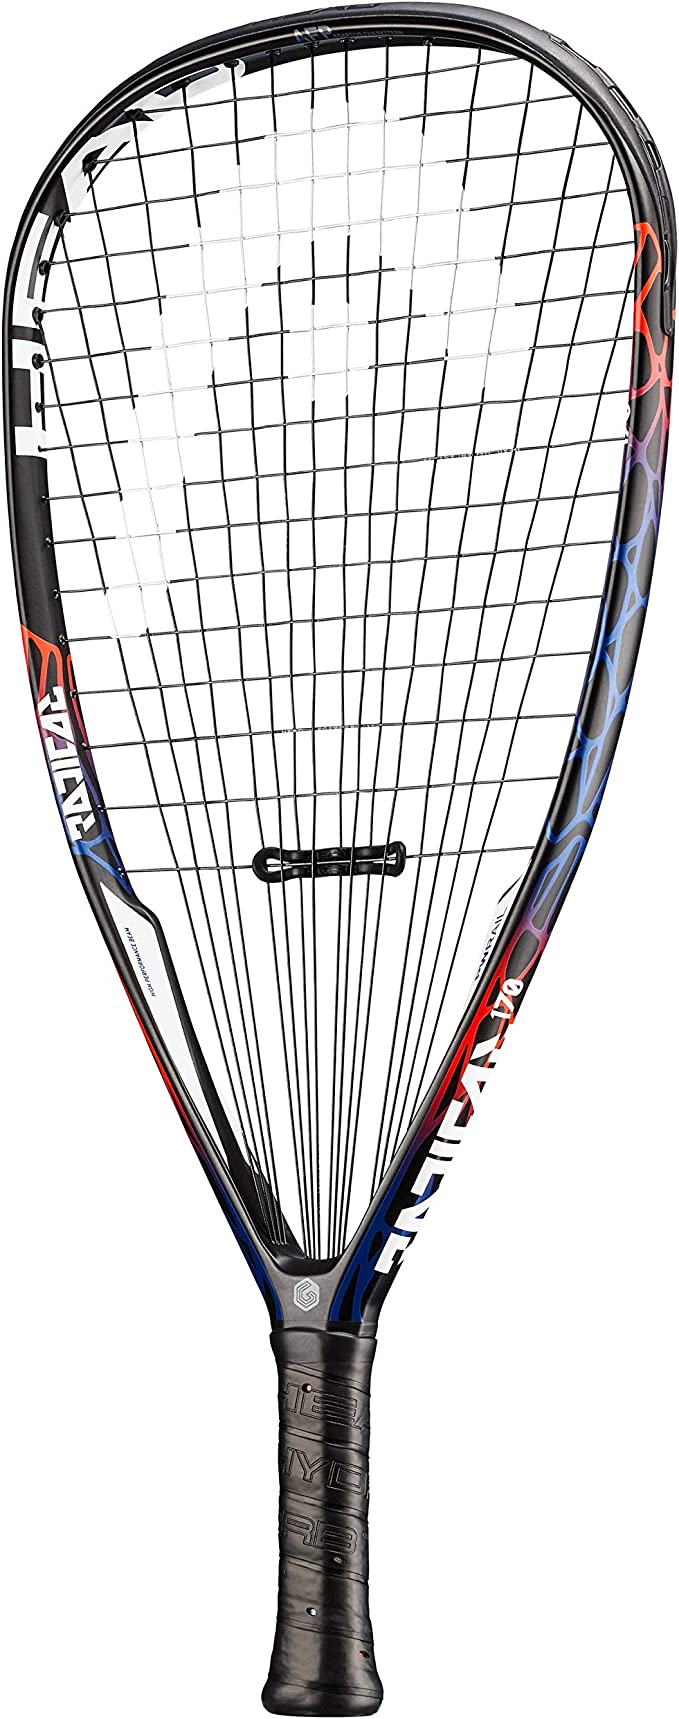 3 5//8 and 3 7//8 Grip Available 3 5//8 and 3 7//8 Grip Available HEAD Graphene Radical 160//170//180 Racquetball Racquet Series,